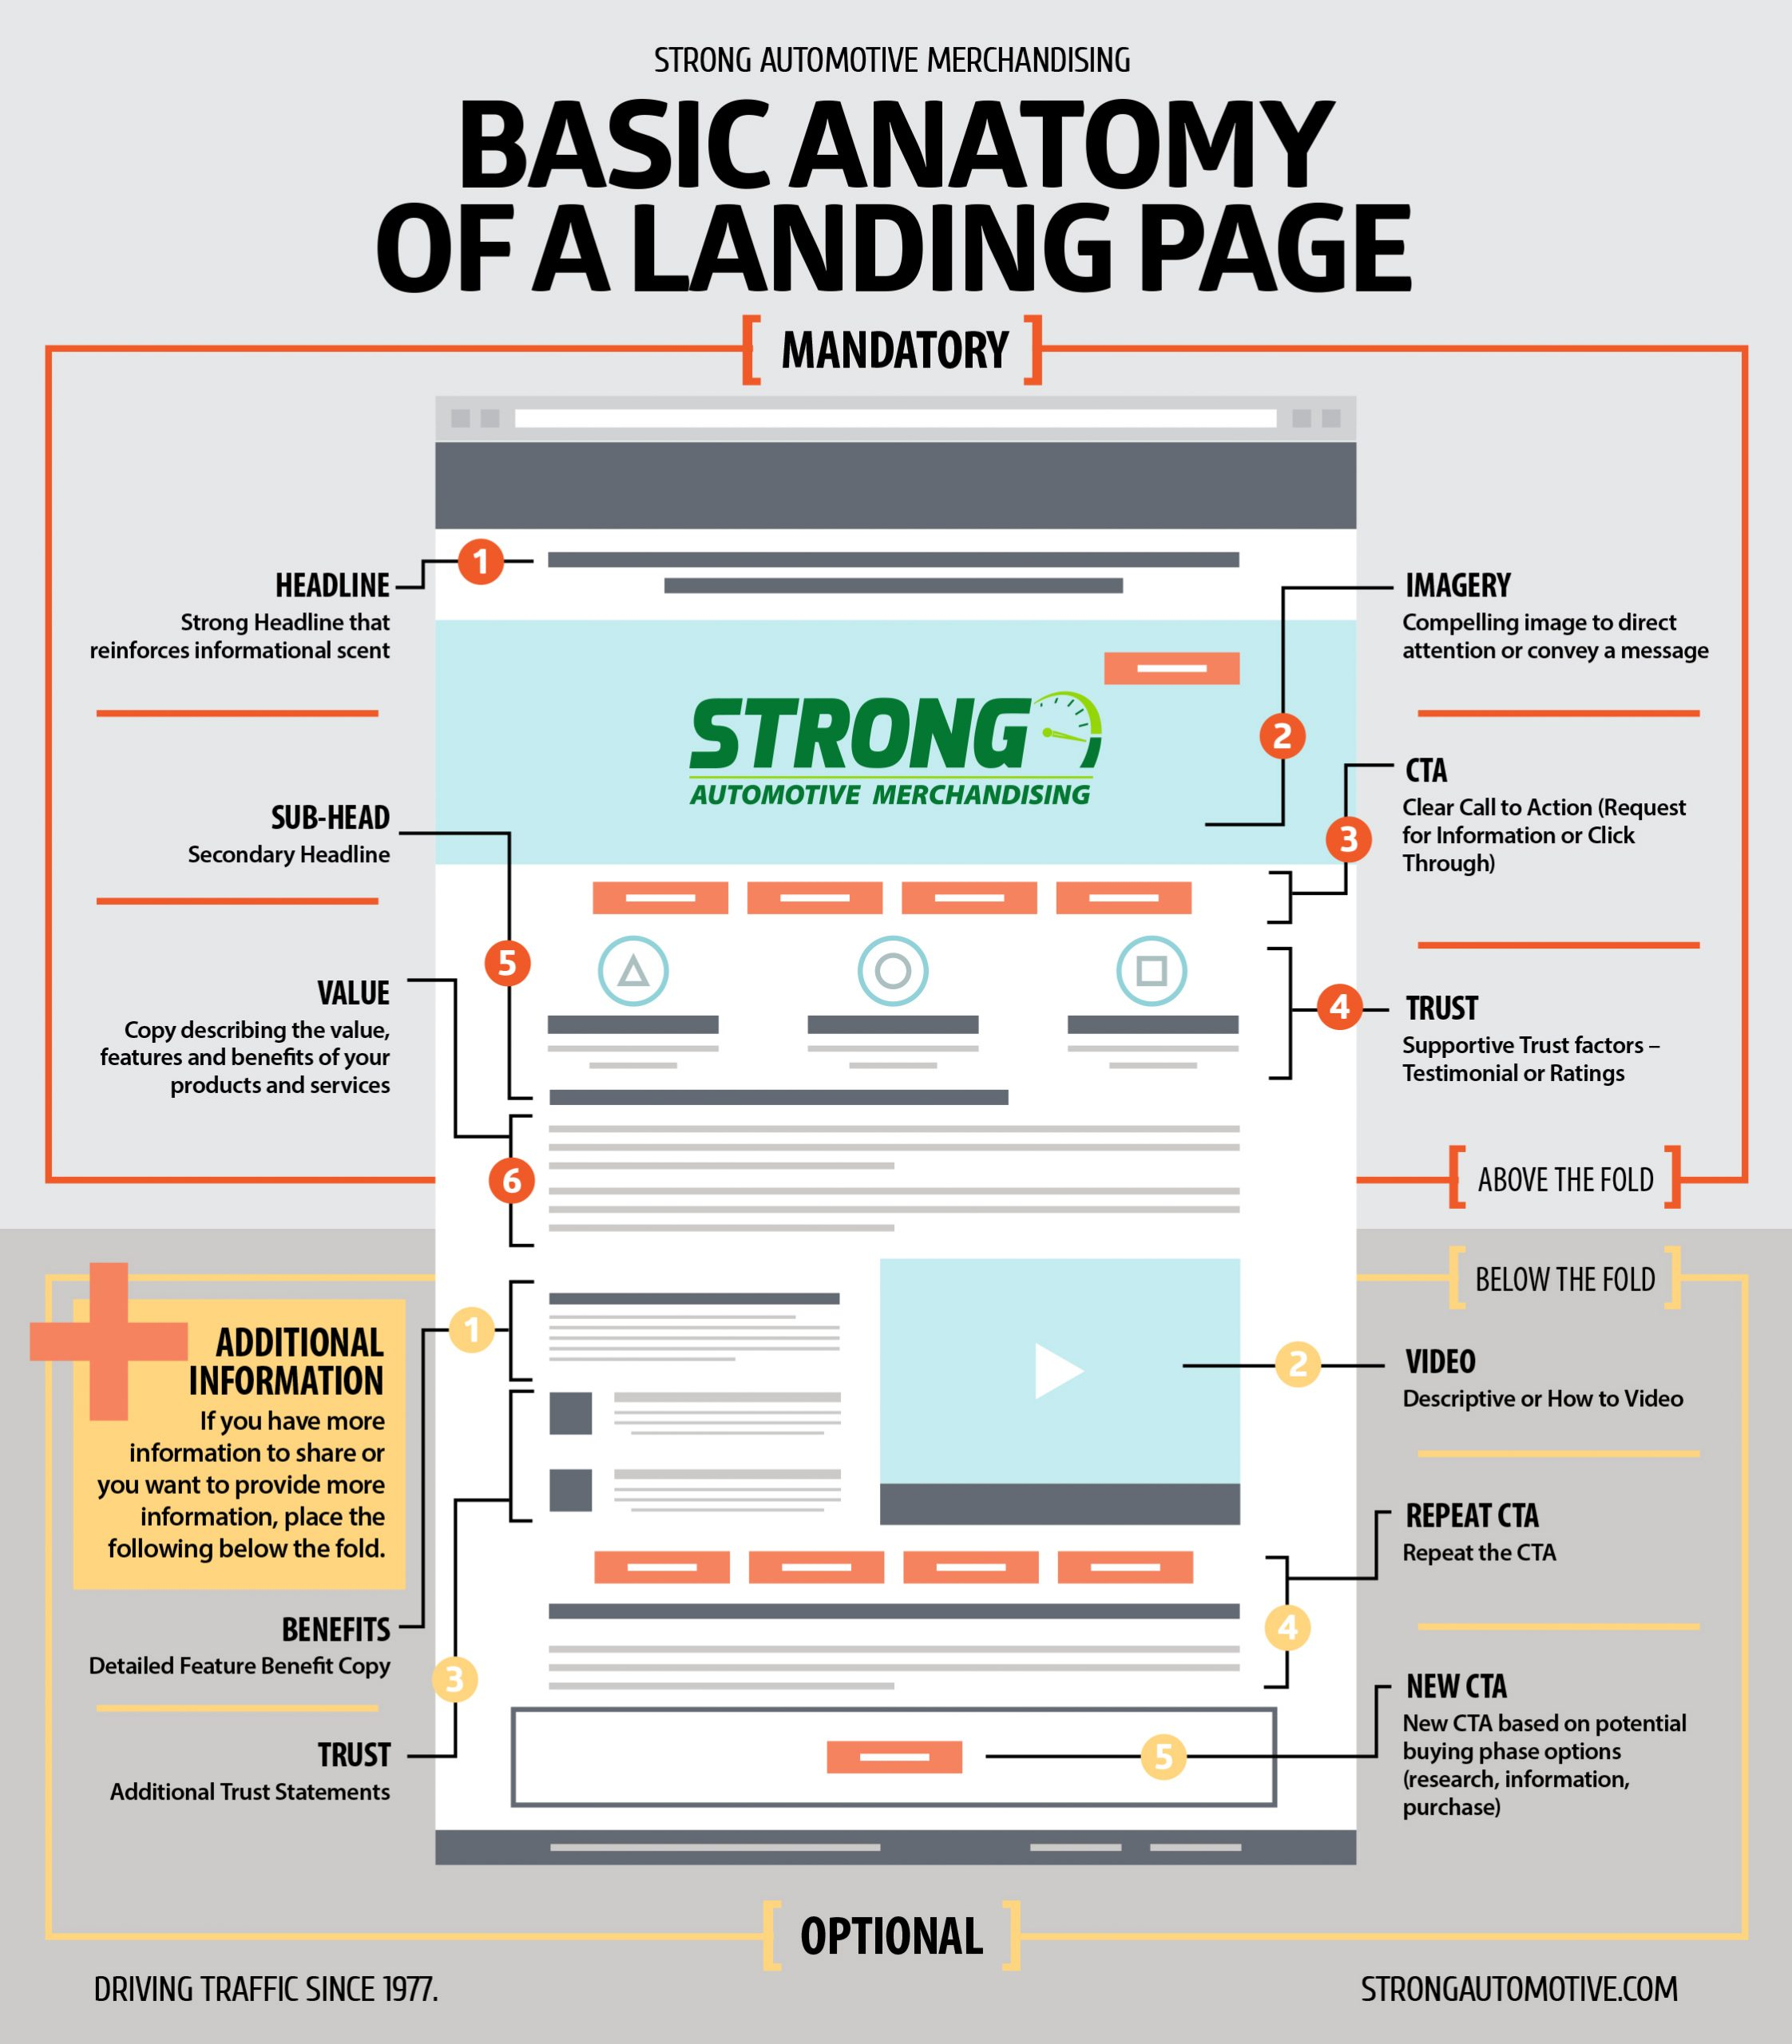 The Basic Anatomy of a Landing Page